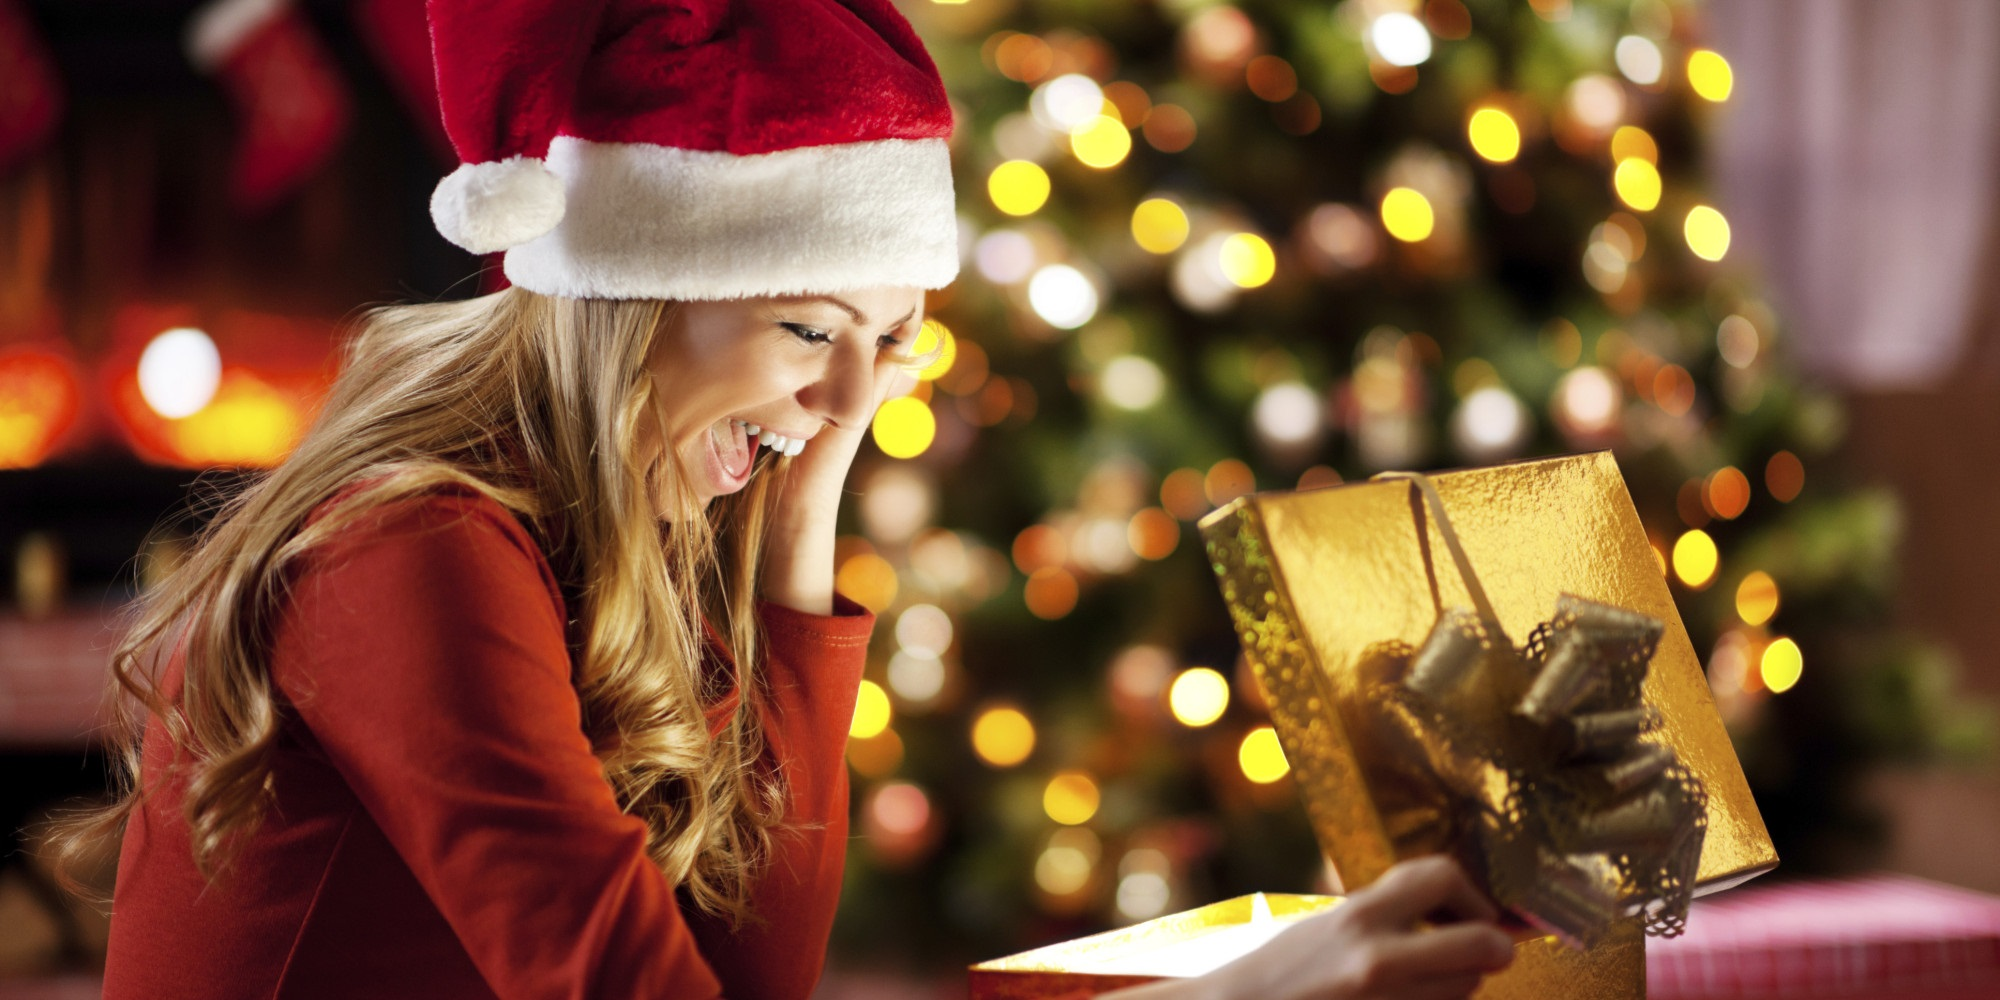 Some great gifting ideas for your dear ones this Christmas season